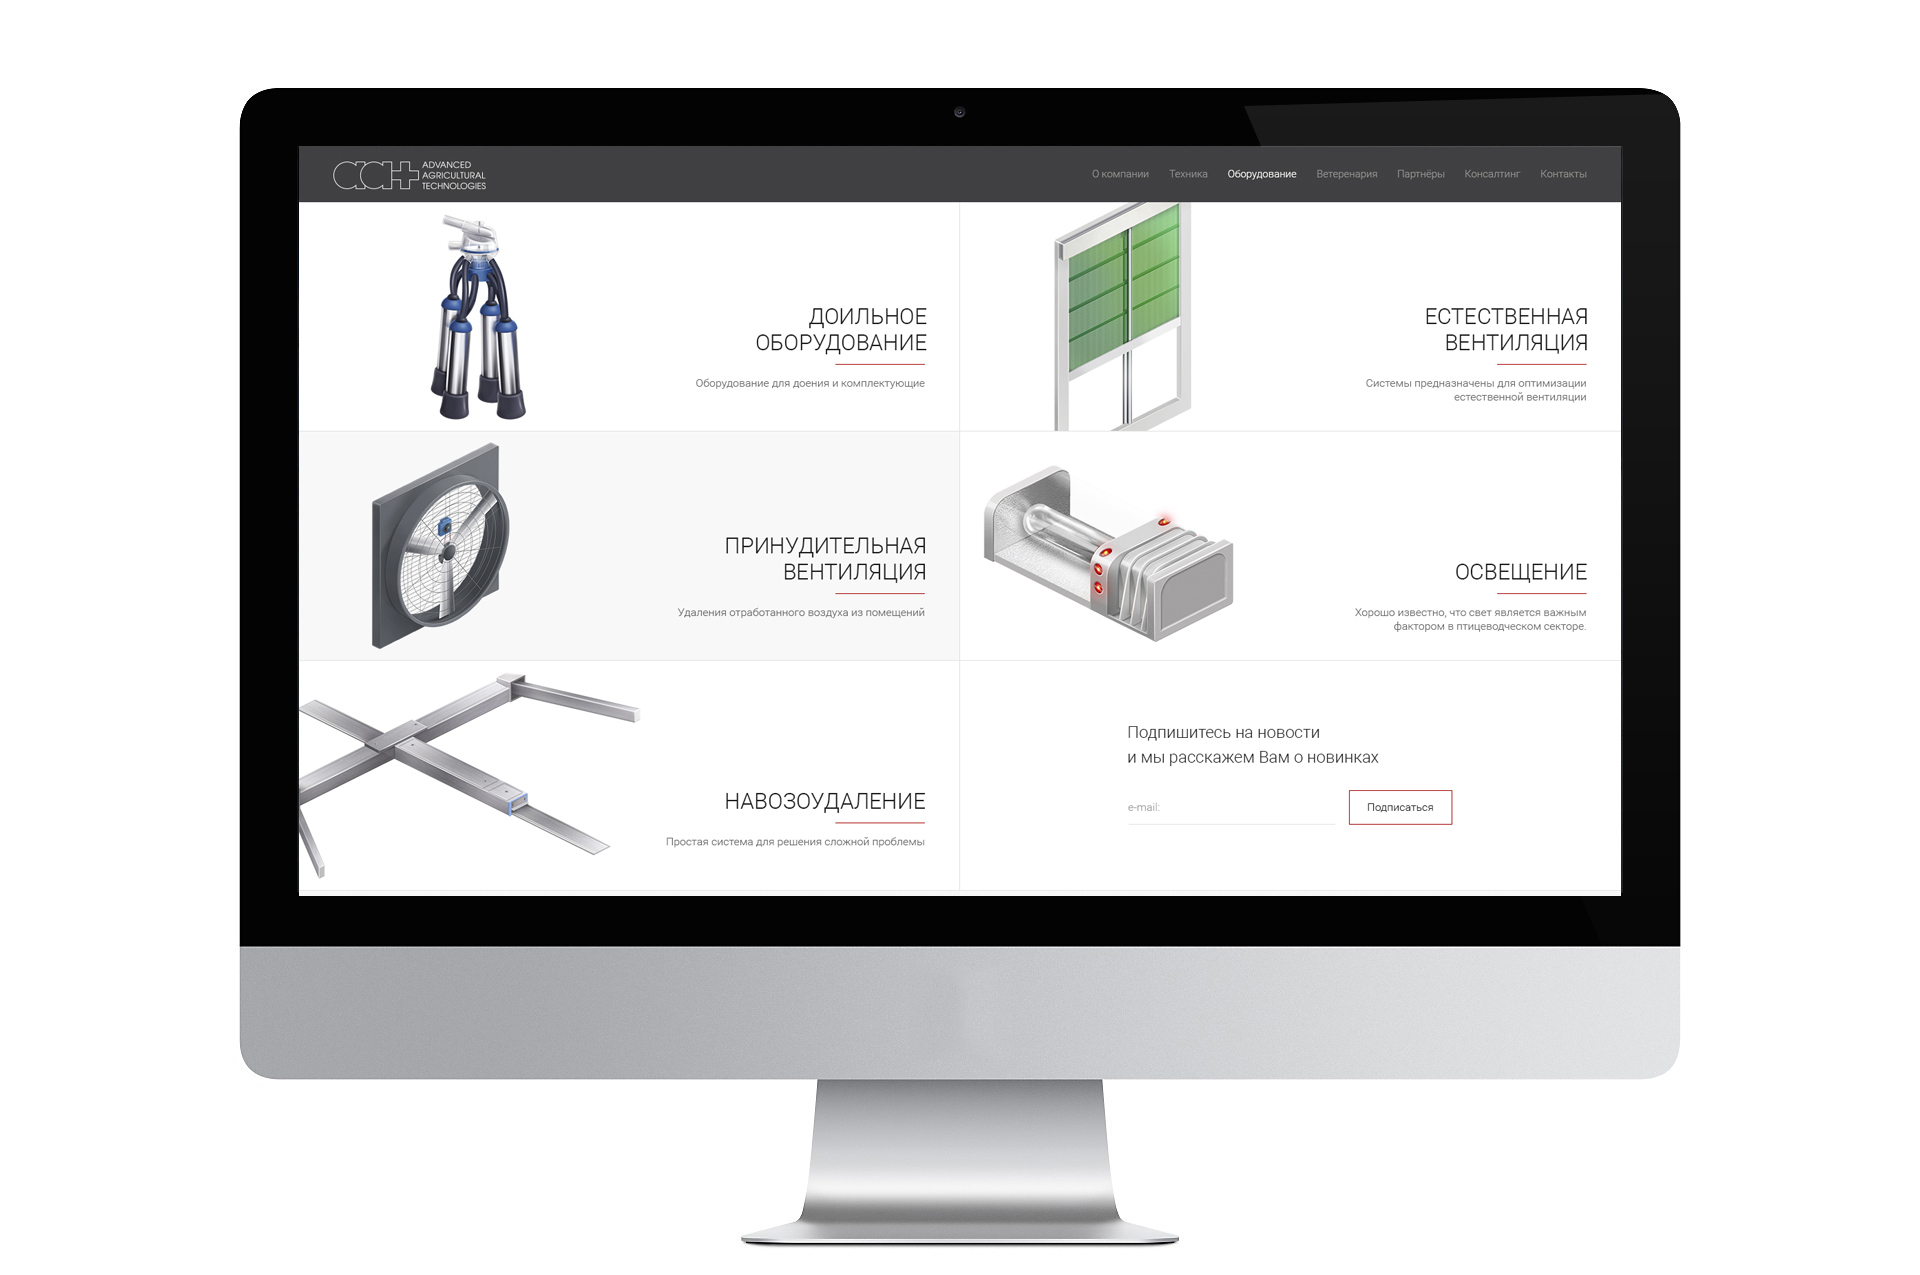 AAT website design. Advanced Agricultural Technologies. Equipment illustrations.